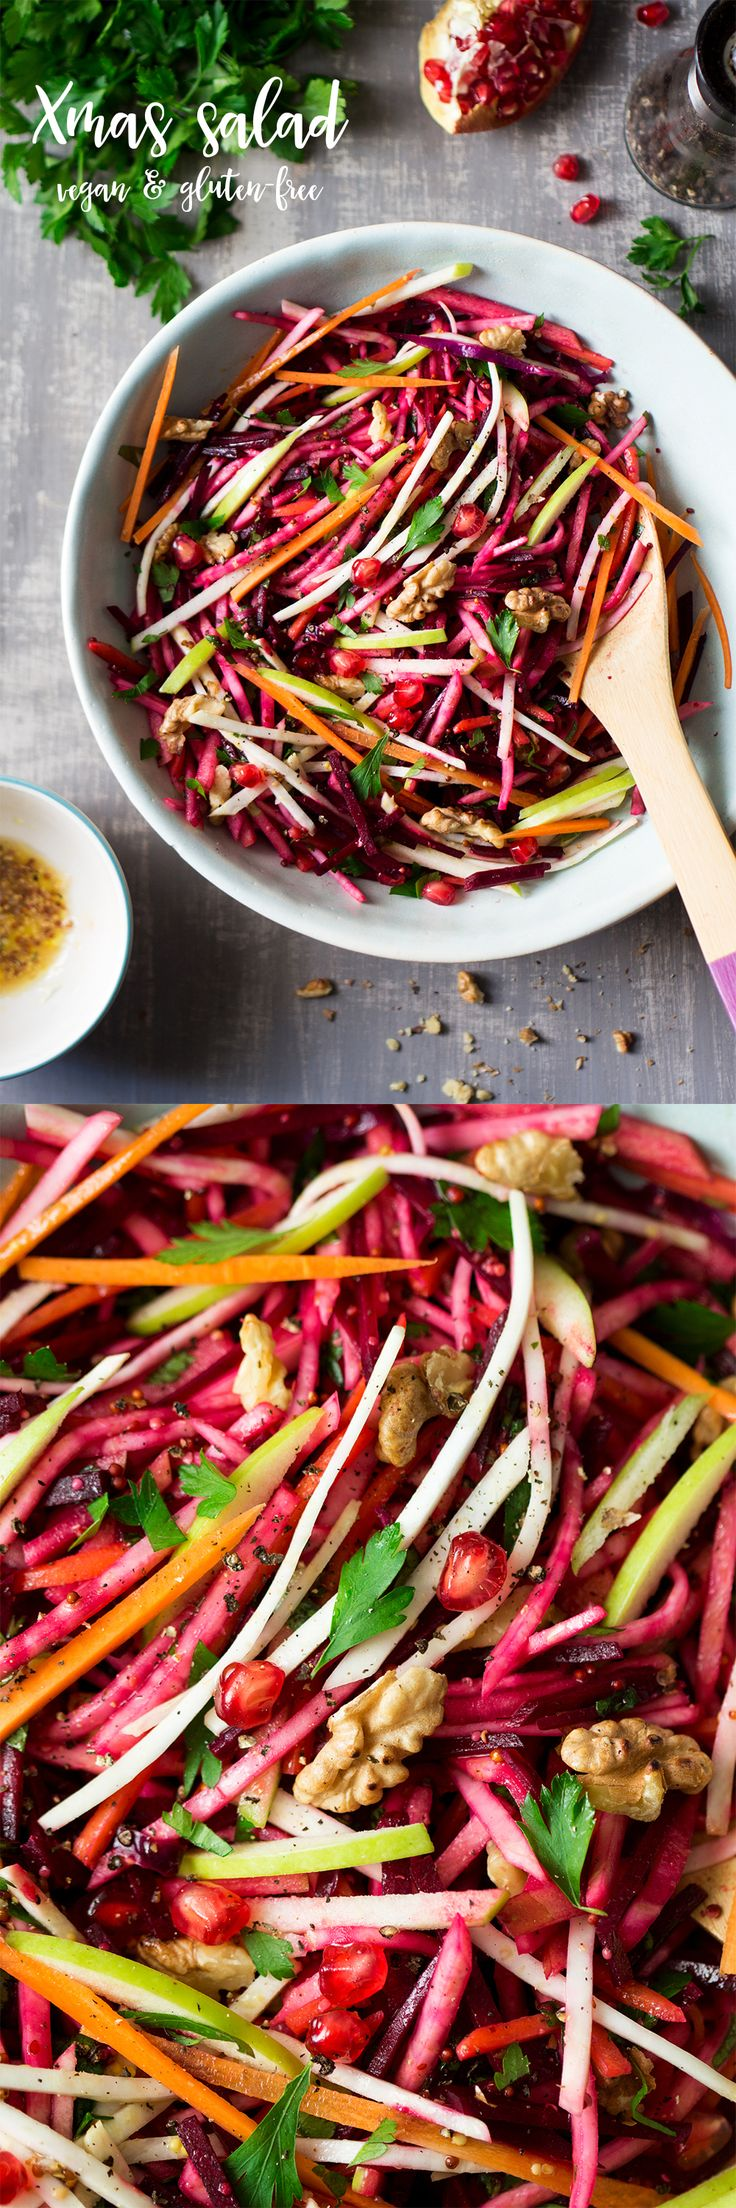 This simple #rootvegetable #salad is fresh, #crunchy and so vibrant, perfect for your #Christmas table. Naturally #vegan and #glutenfree too!  #recipe #recipes #xmas #beetroot #celeriac #celeriacsalad #rootveg #vegetarian #rainbowsalad #rainbow